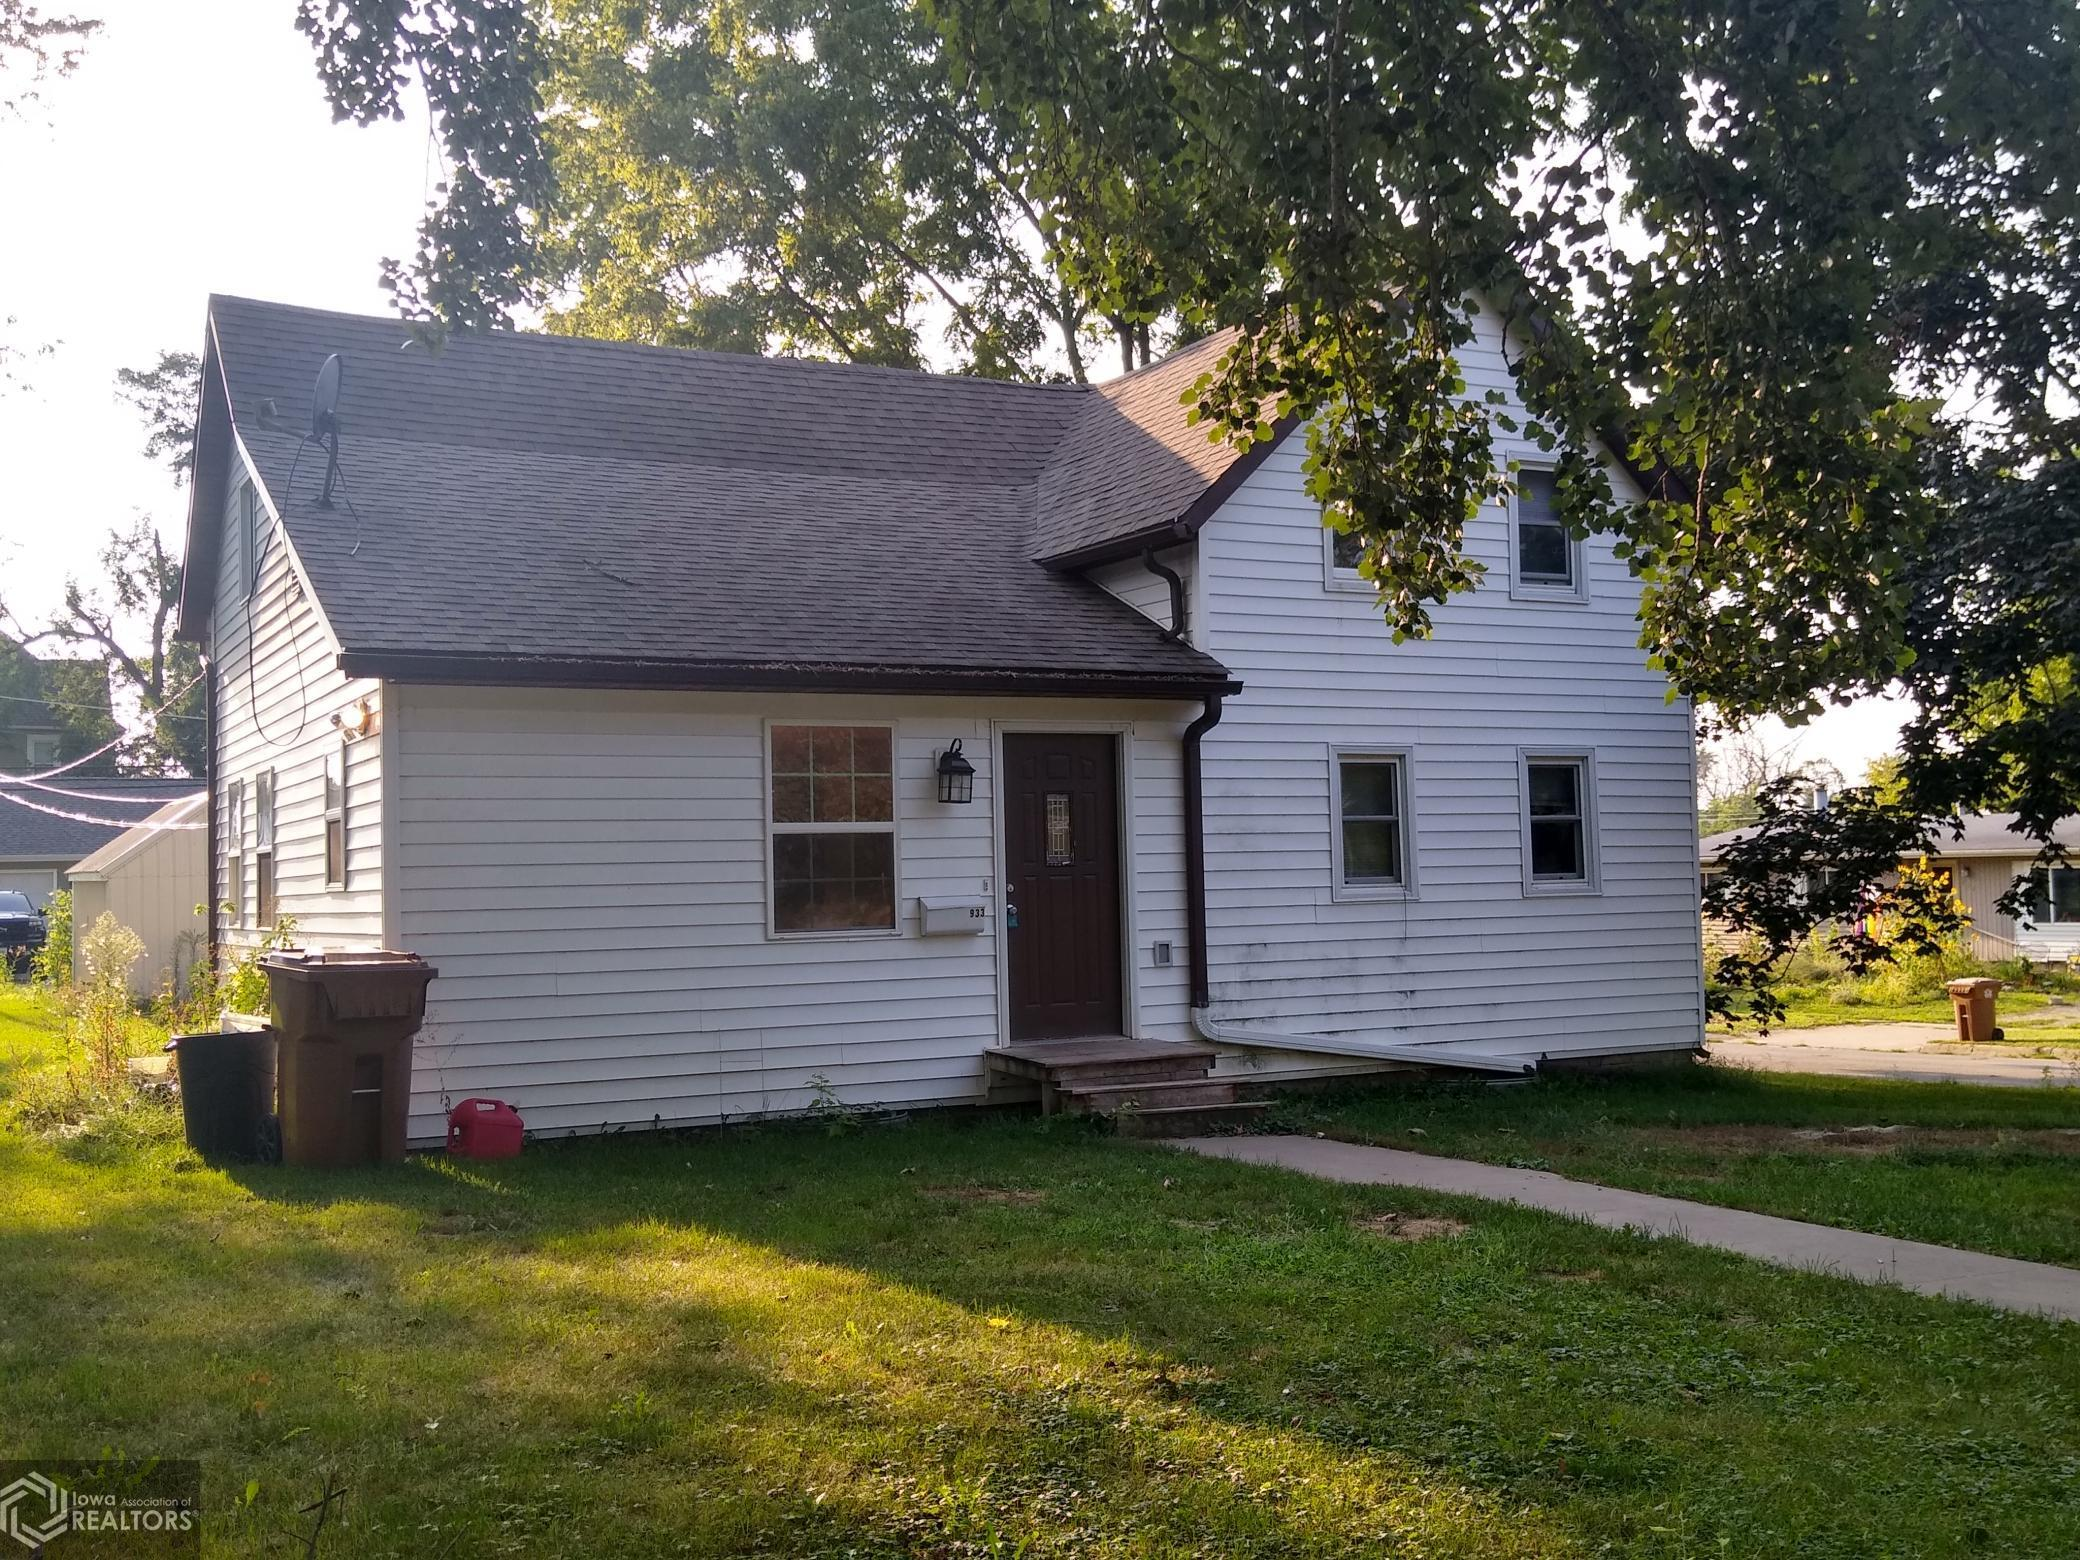 933 Center, Grinnell, Iowa 50112-1962, 4 Bedrooms Bedrooms, ,1 BathroomBathrooms,Single Family,For Sale,Center,6093911